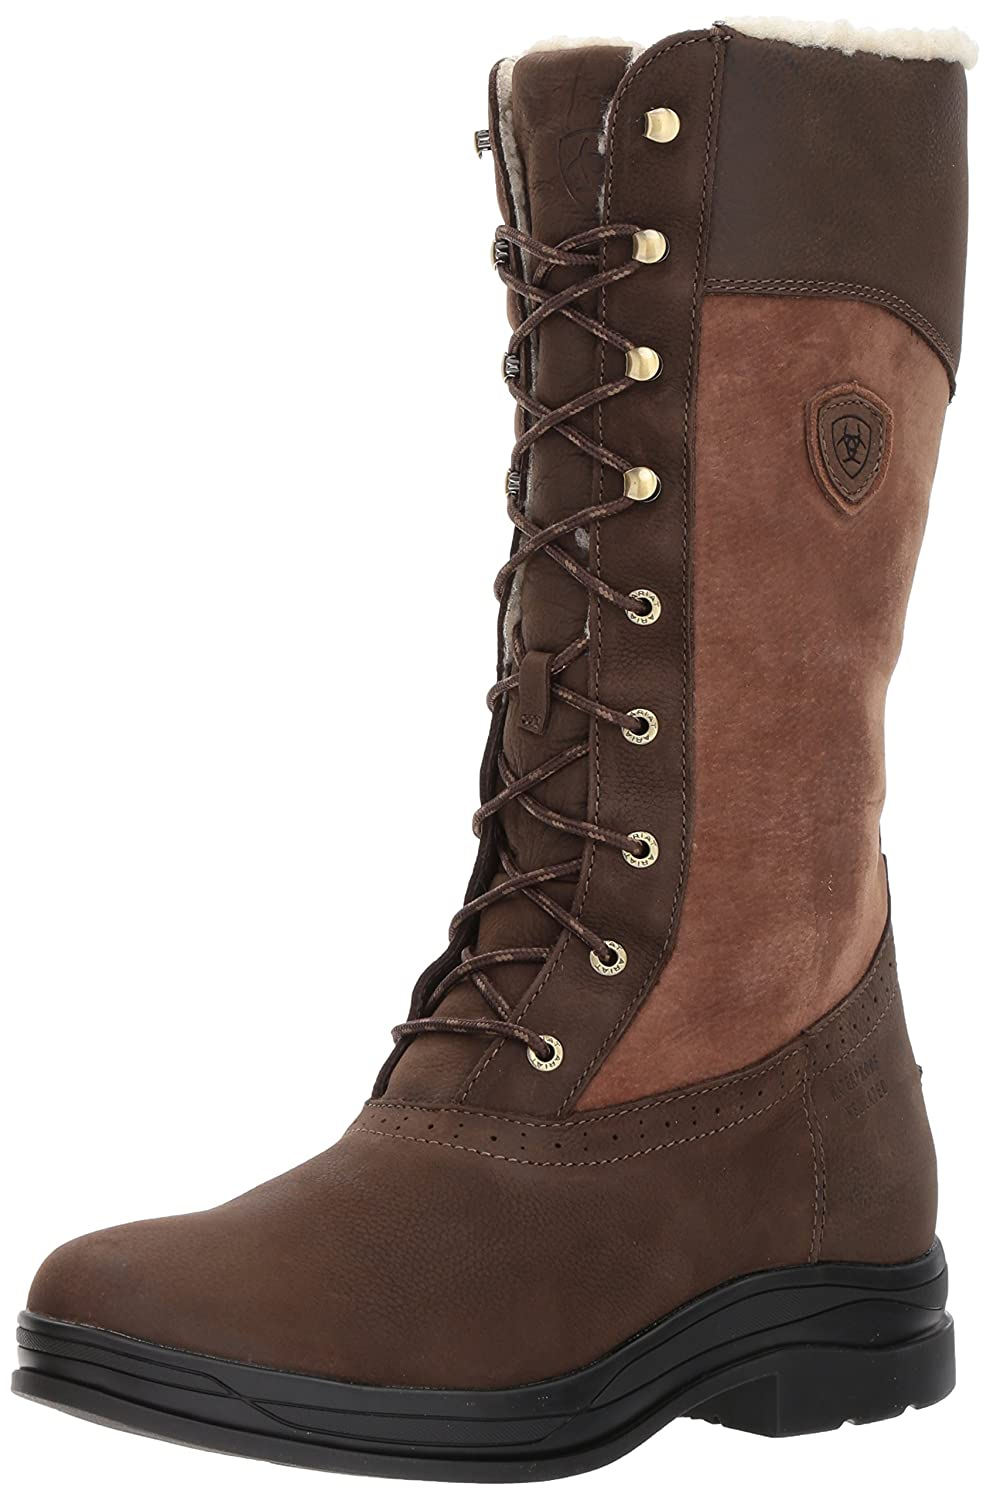 Ariat Women's Wythburn H2O Insulated Country Boot B01MYDS5CK 9.5 B(M) US|Java